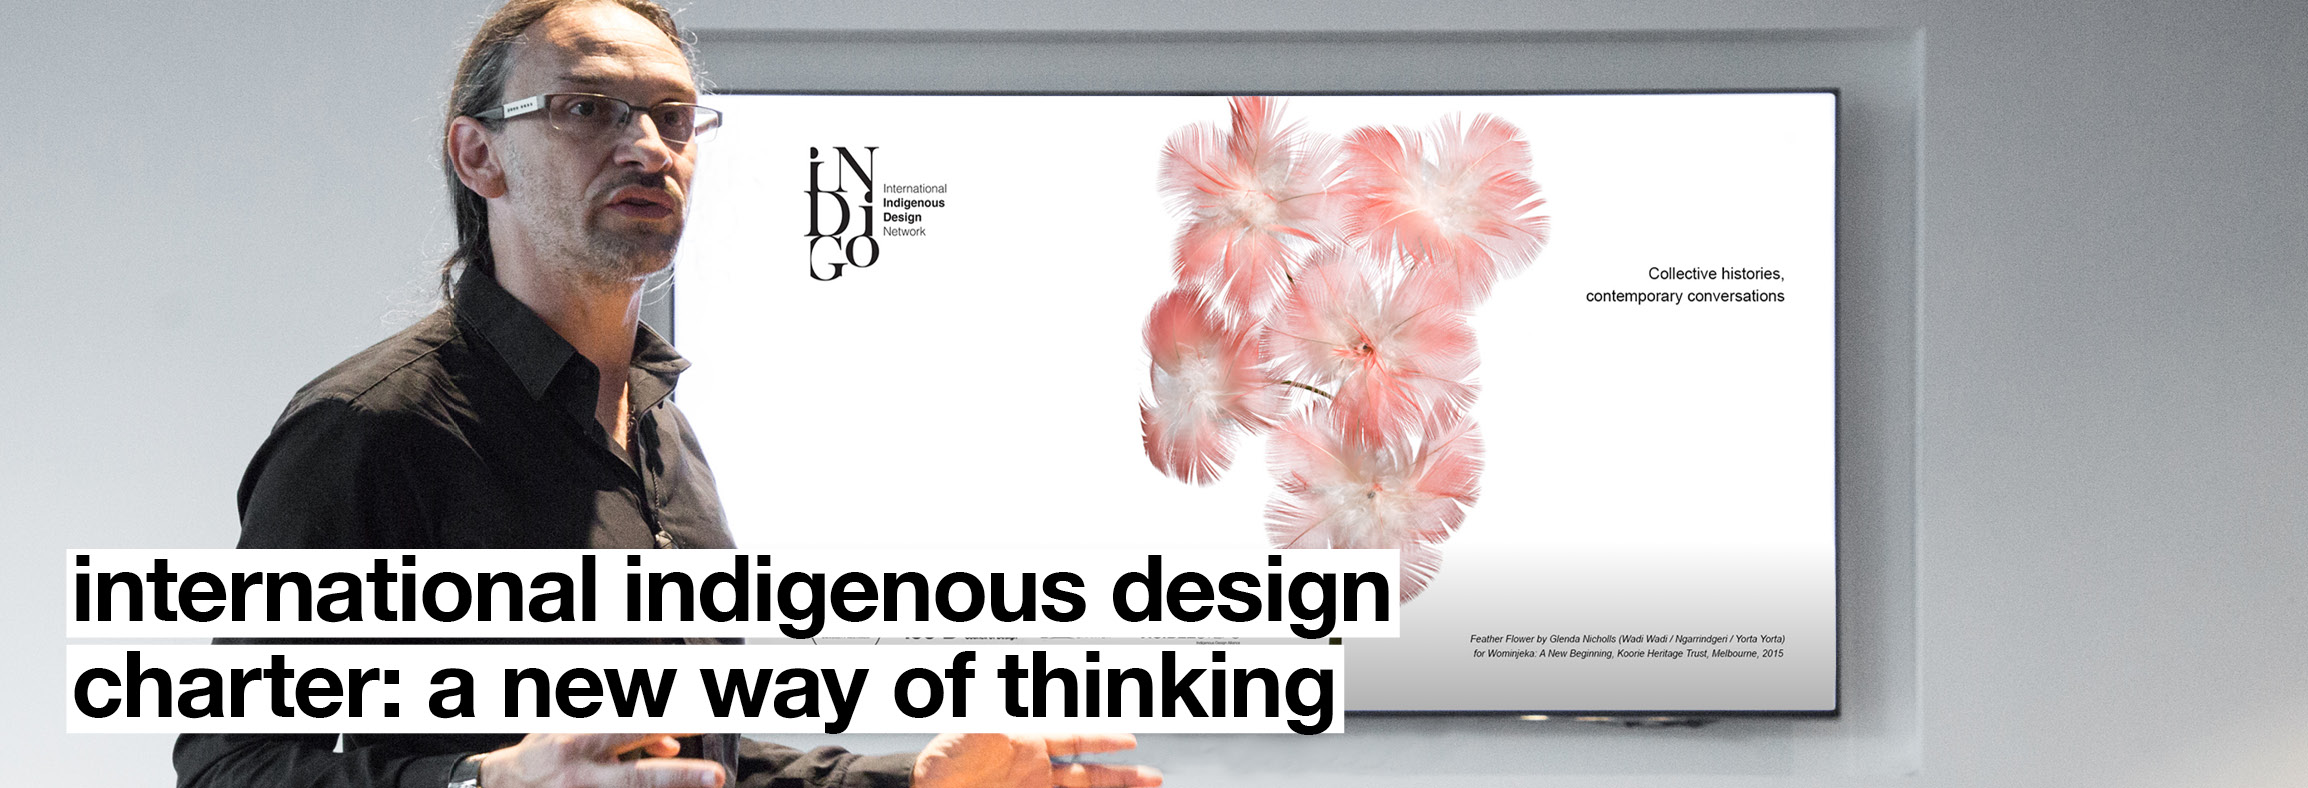 International Indigenous Design Charter: A New Way of Thinking